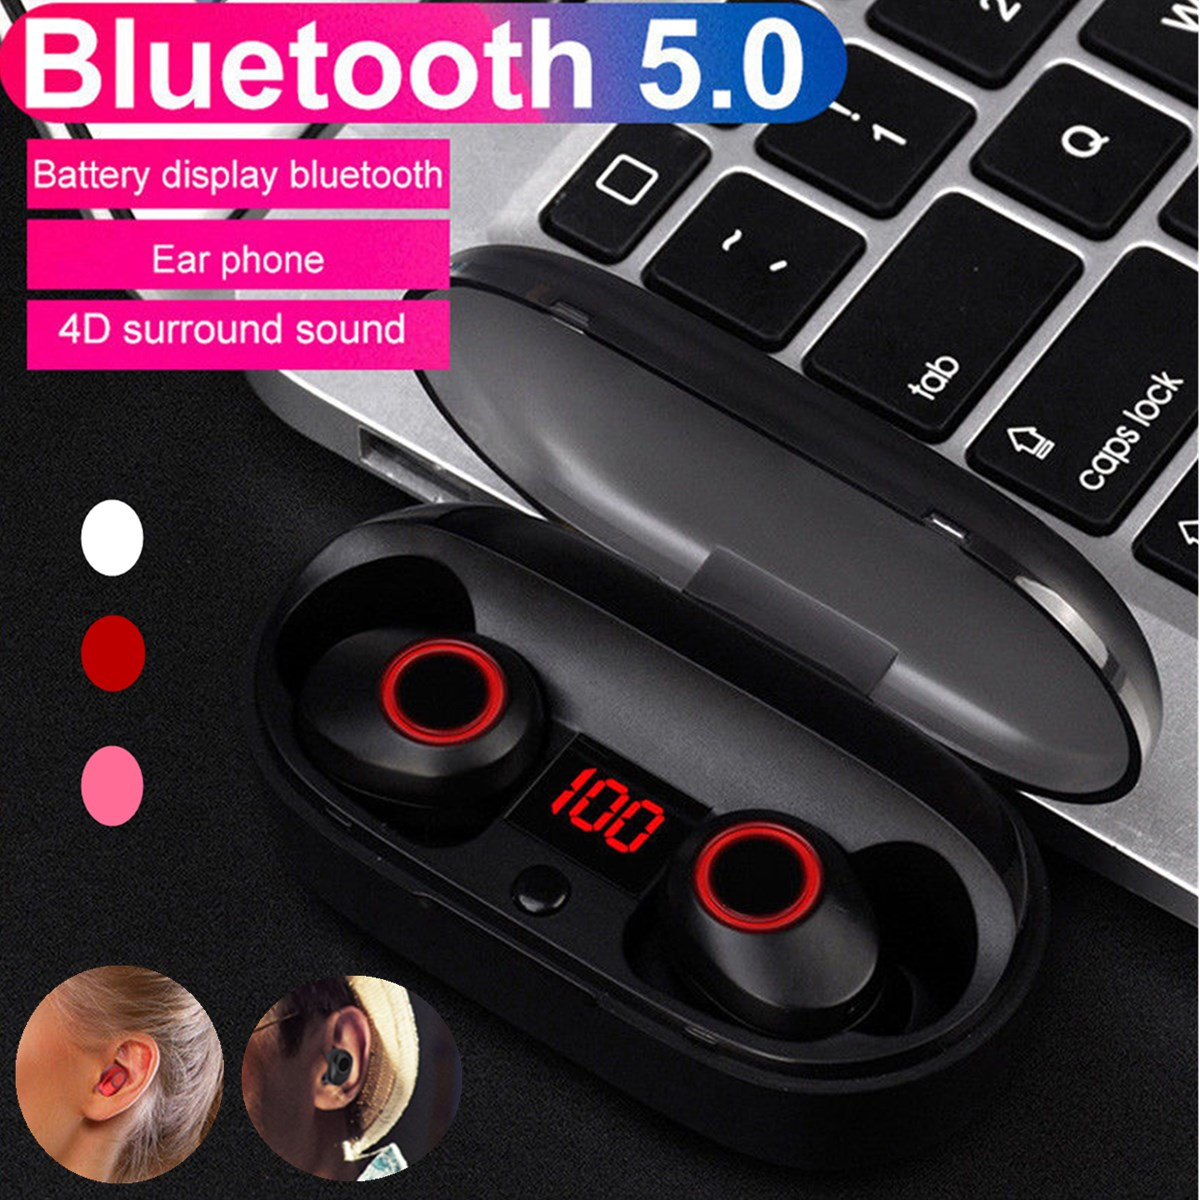 Professional Twins Mini 4D Stereo Sound Ear buds bluetooth 5.0 Earphone Invisible True Wireless Waterproof Sport EarbudsProfessional Twins Mini 4D Stereo Sound Ear buds bluetooth 5.0 Earphone Invisible True Wireless Waterproof Sport Earbuds